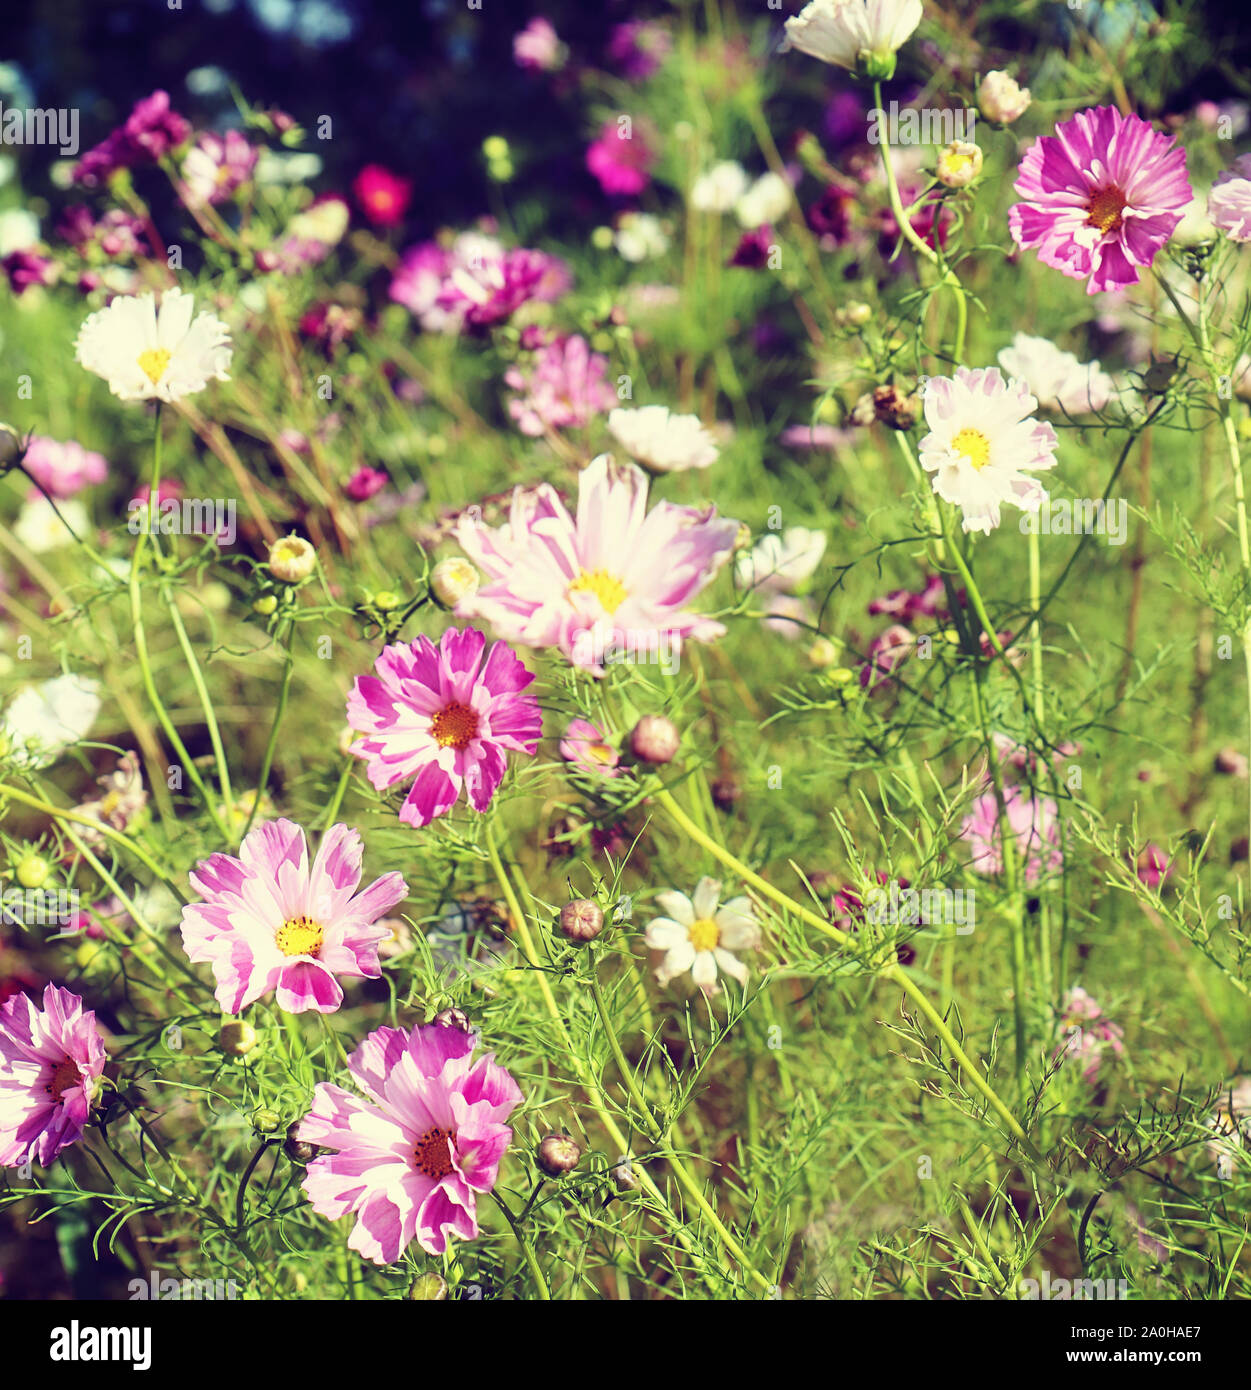 Summer meadow in Bavaria coutryside full of beautiful pink daisies Stock Photo